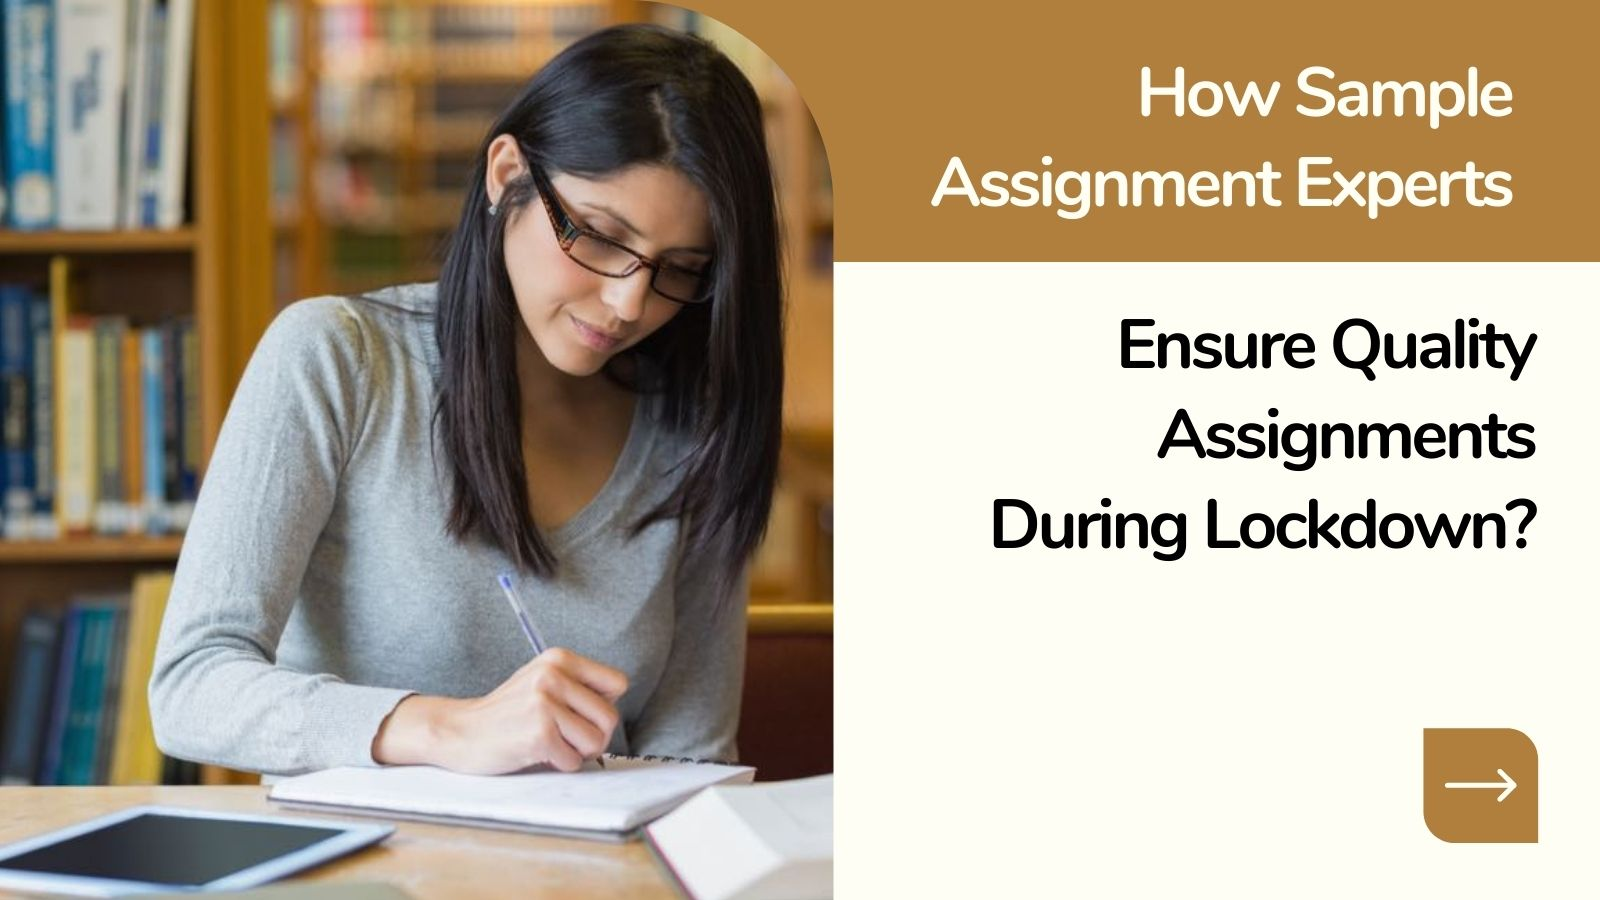 Sample Assignment Experts